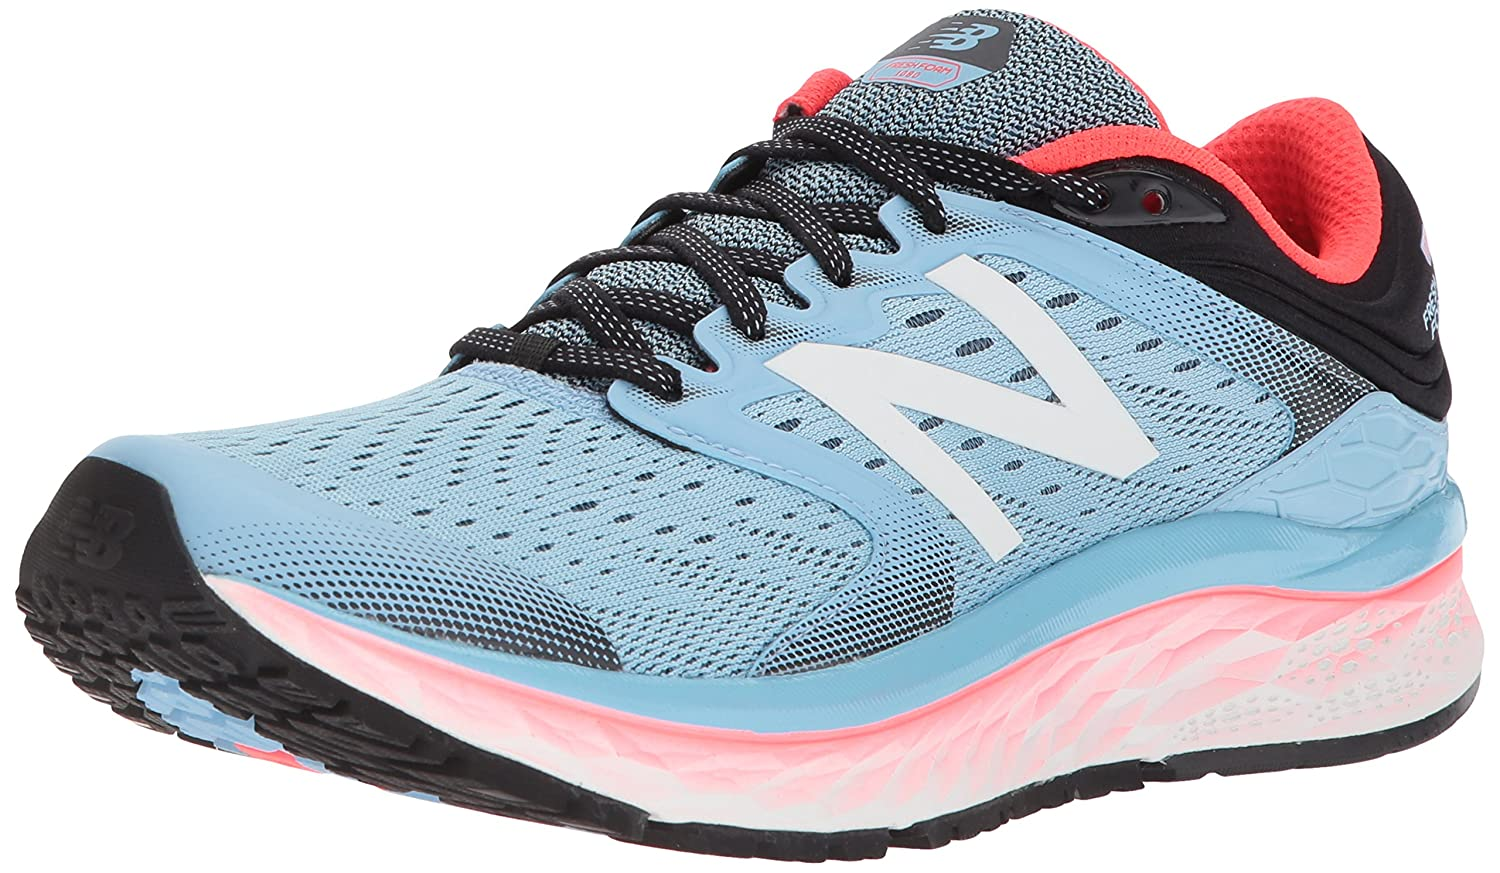 New Balance Women's 1080v8 Fresh Foam Running Shoe B071WKFN2Z 13 2A US|Light Blue